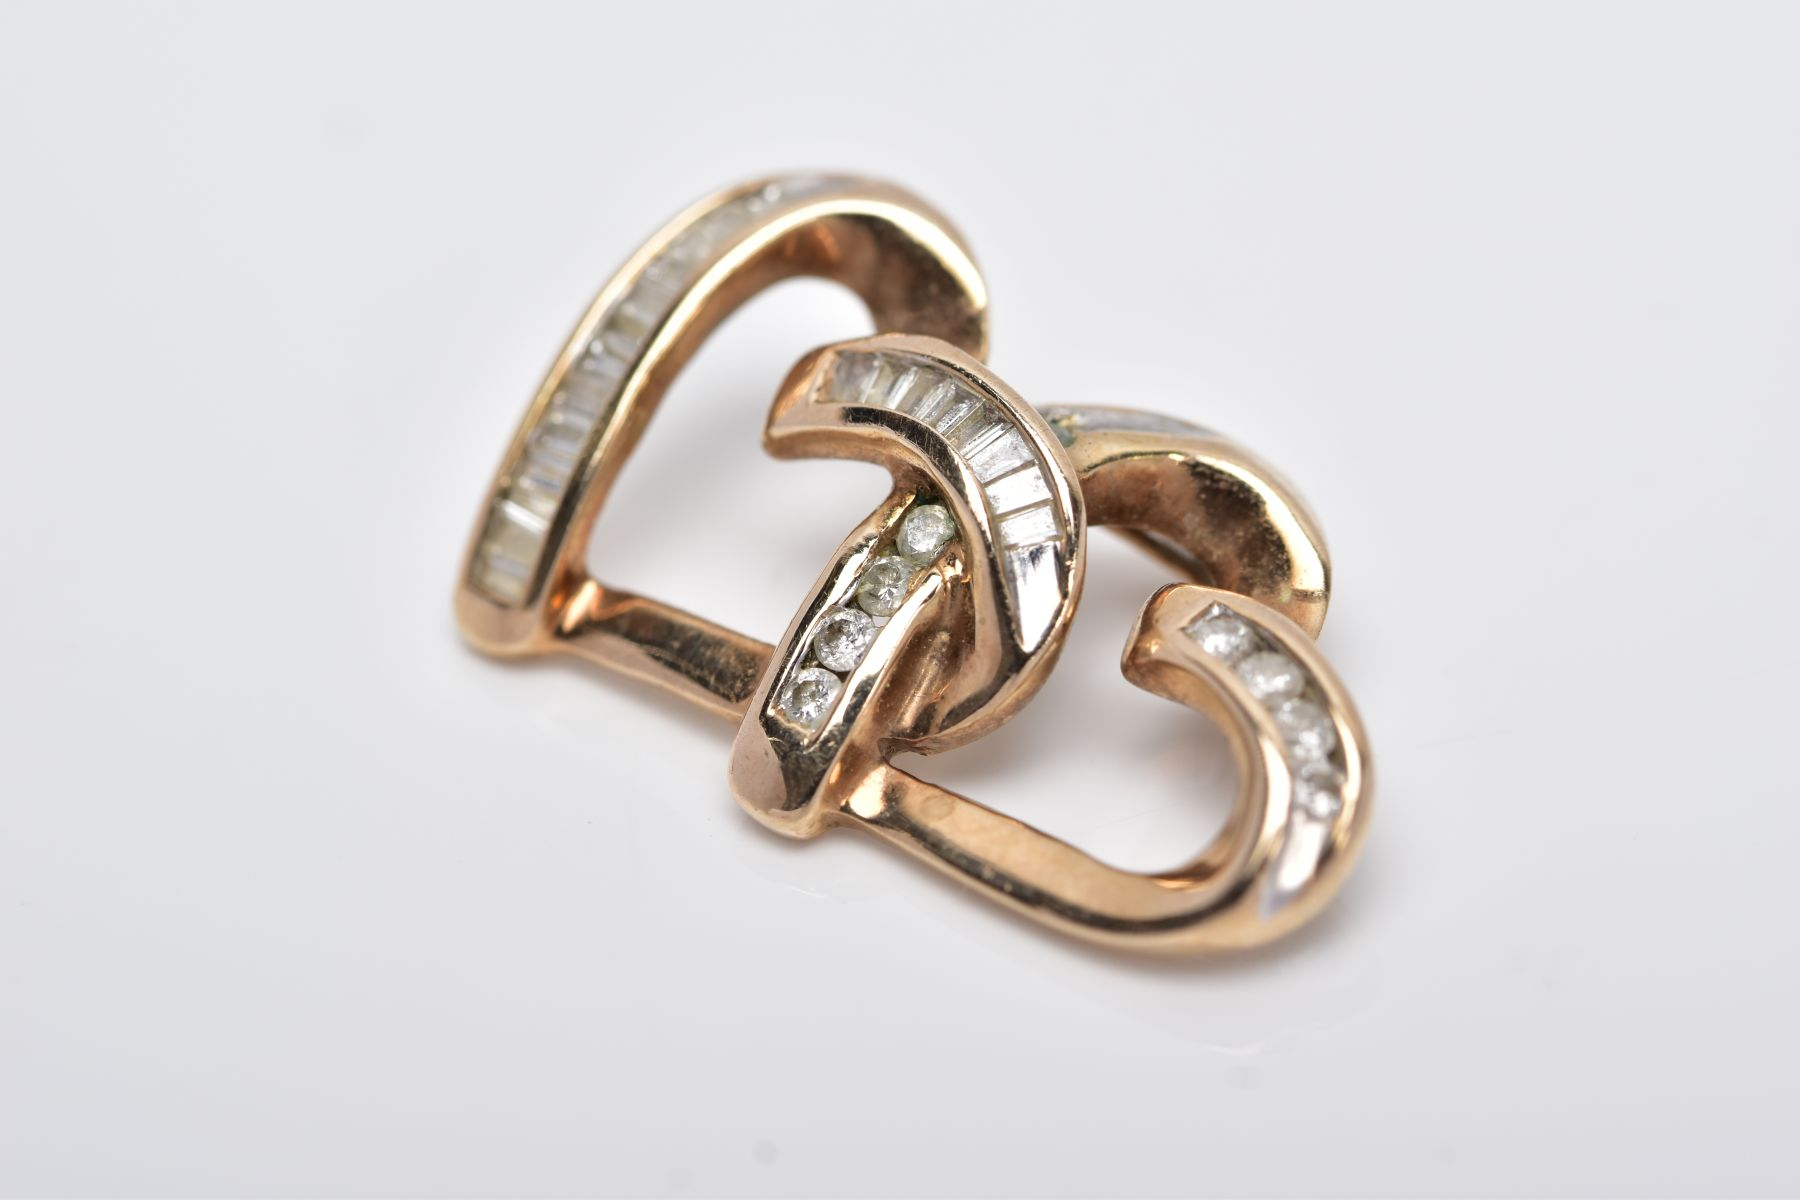 A 9CT GOLD DIAMOND PENDANT, designed as two interlocking, openwork hearts, set with tapered cut - Image 2 of 4